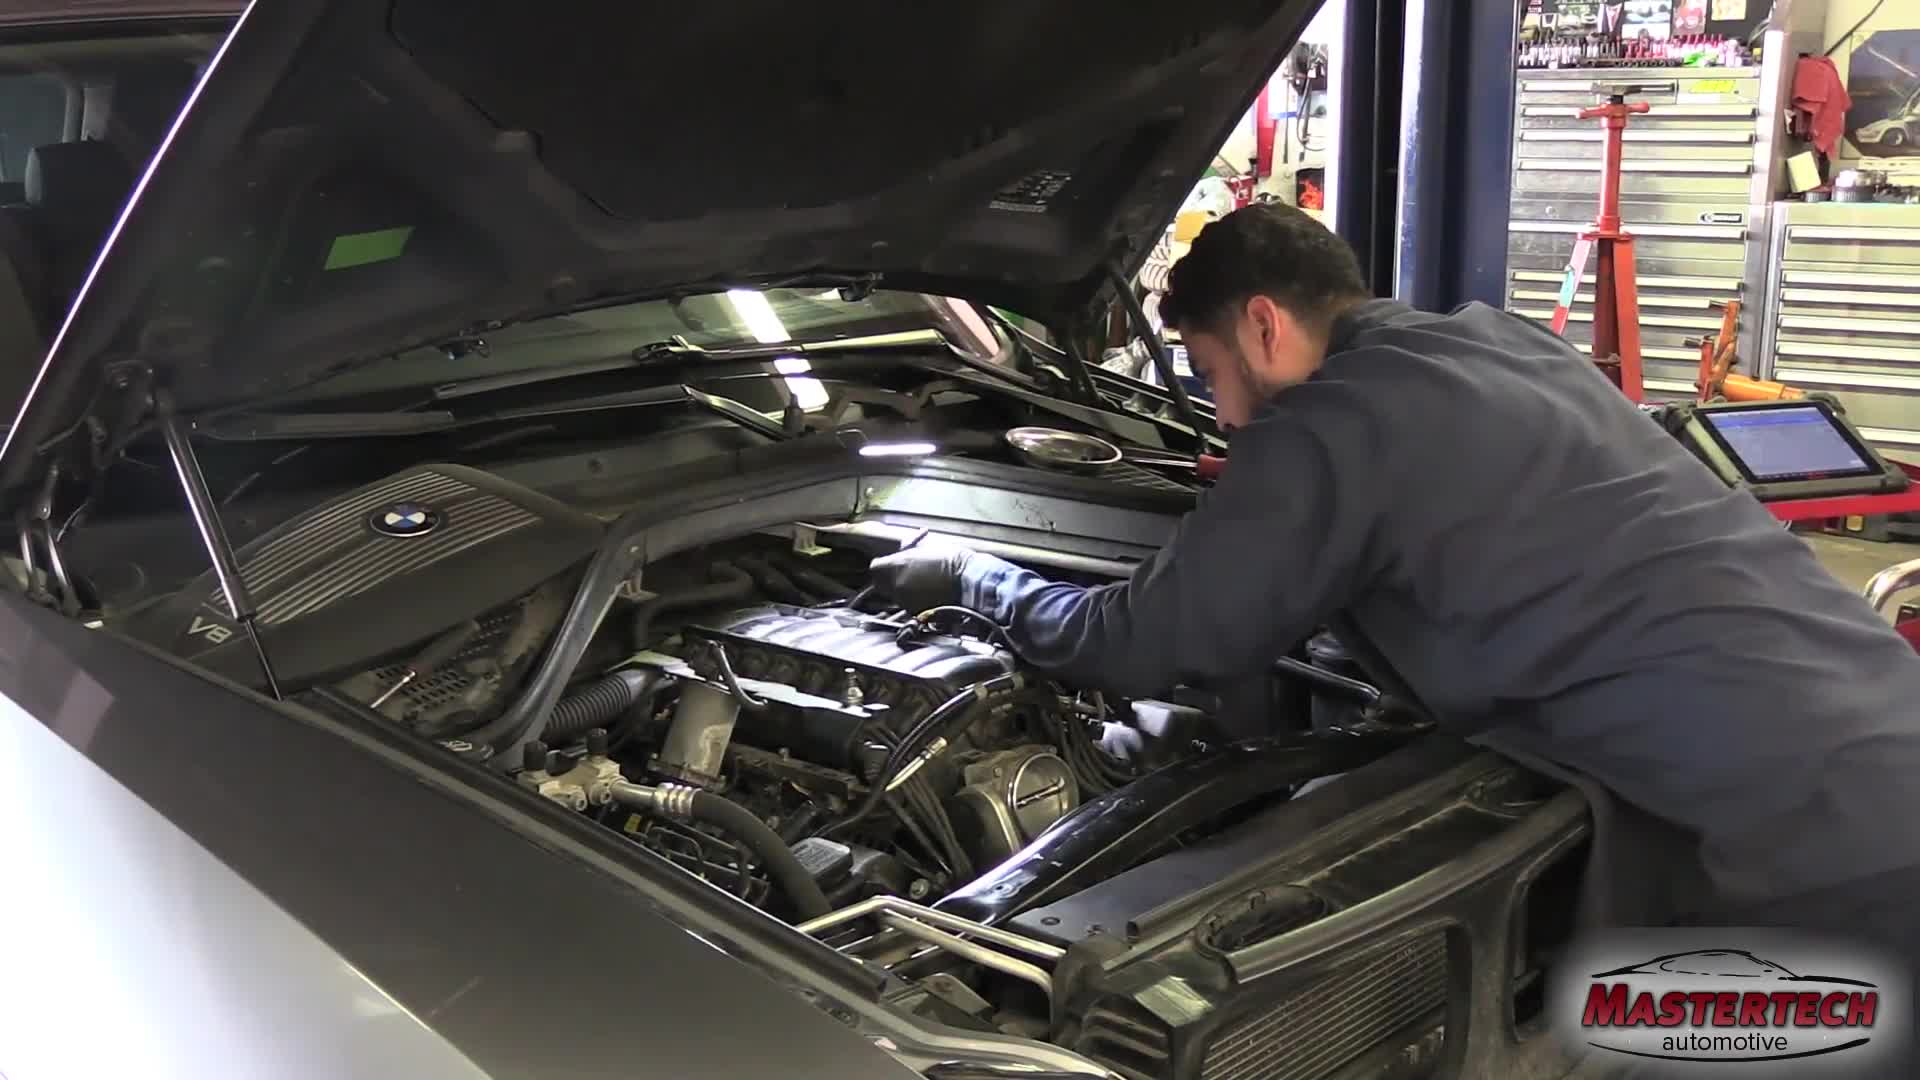 Master Tech Auto Body And Service Centre - Auto Repair Garages - 4164447839